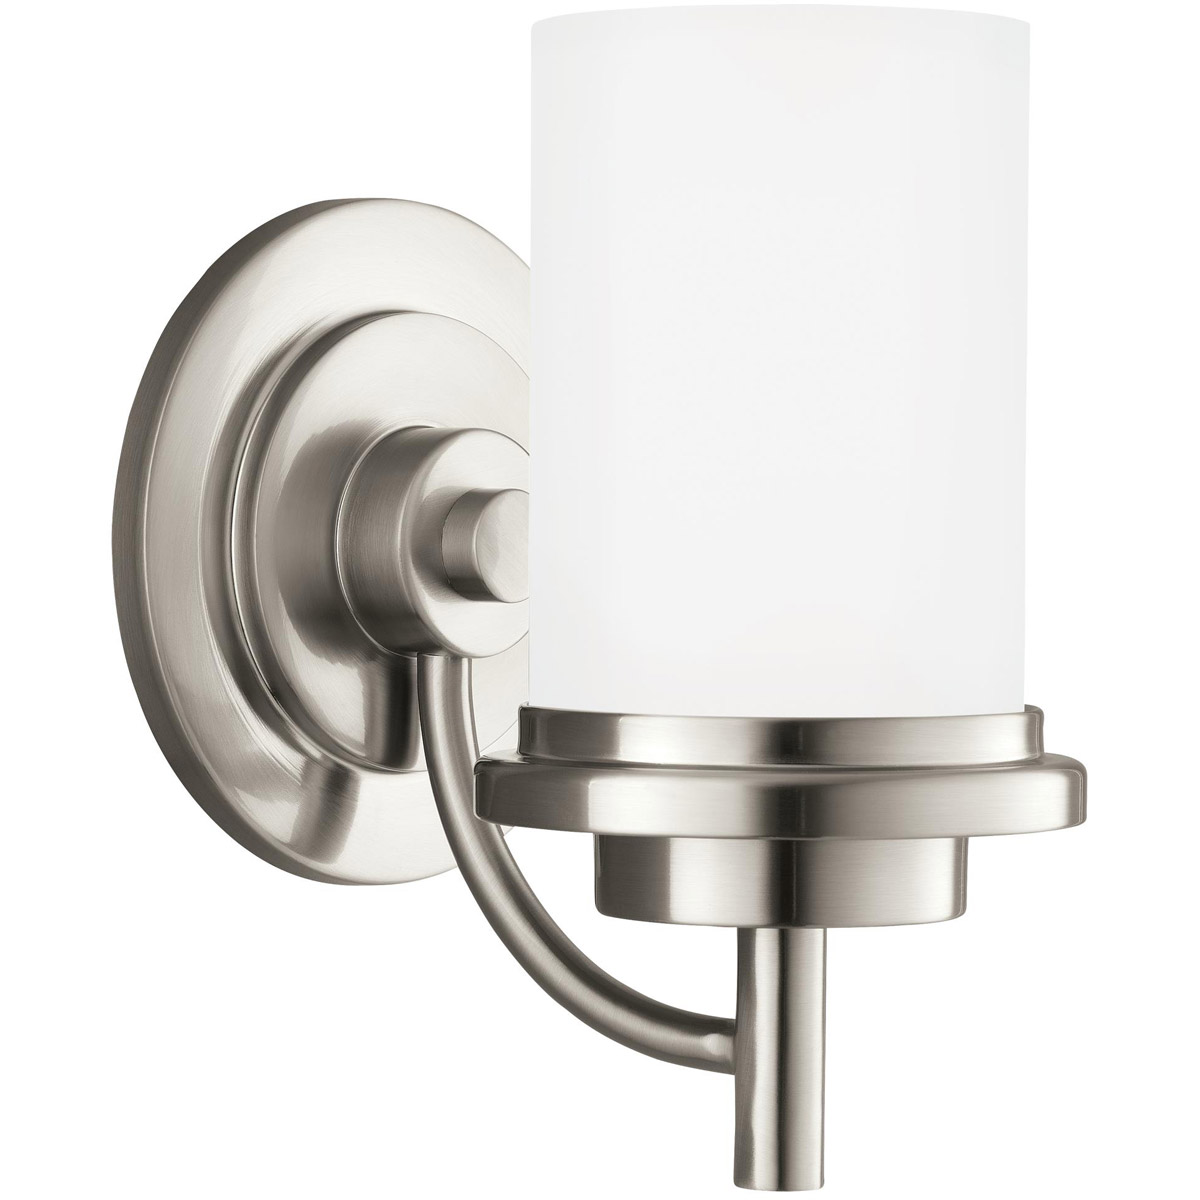 Sea Gull 44660BLE-962 Winnetka 1 Light 6 inch Brushed Nickel Bath Sconce Wall Light in Satin Etched Glass, Fluorescent photo